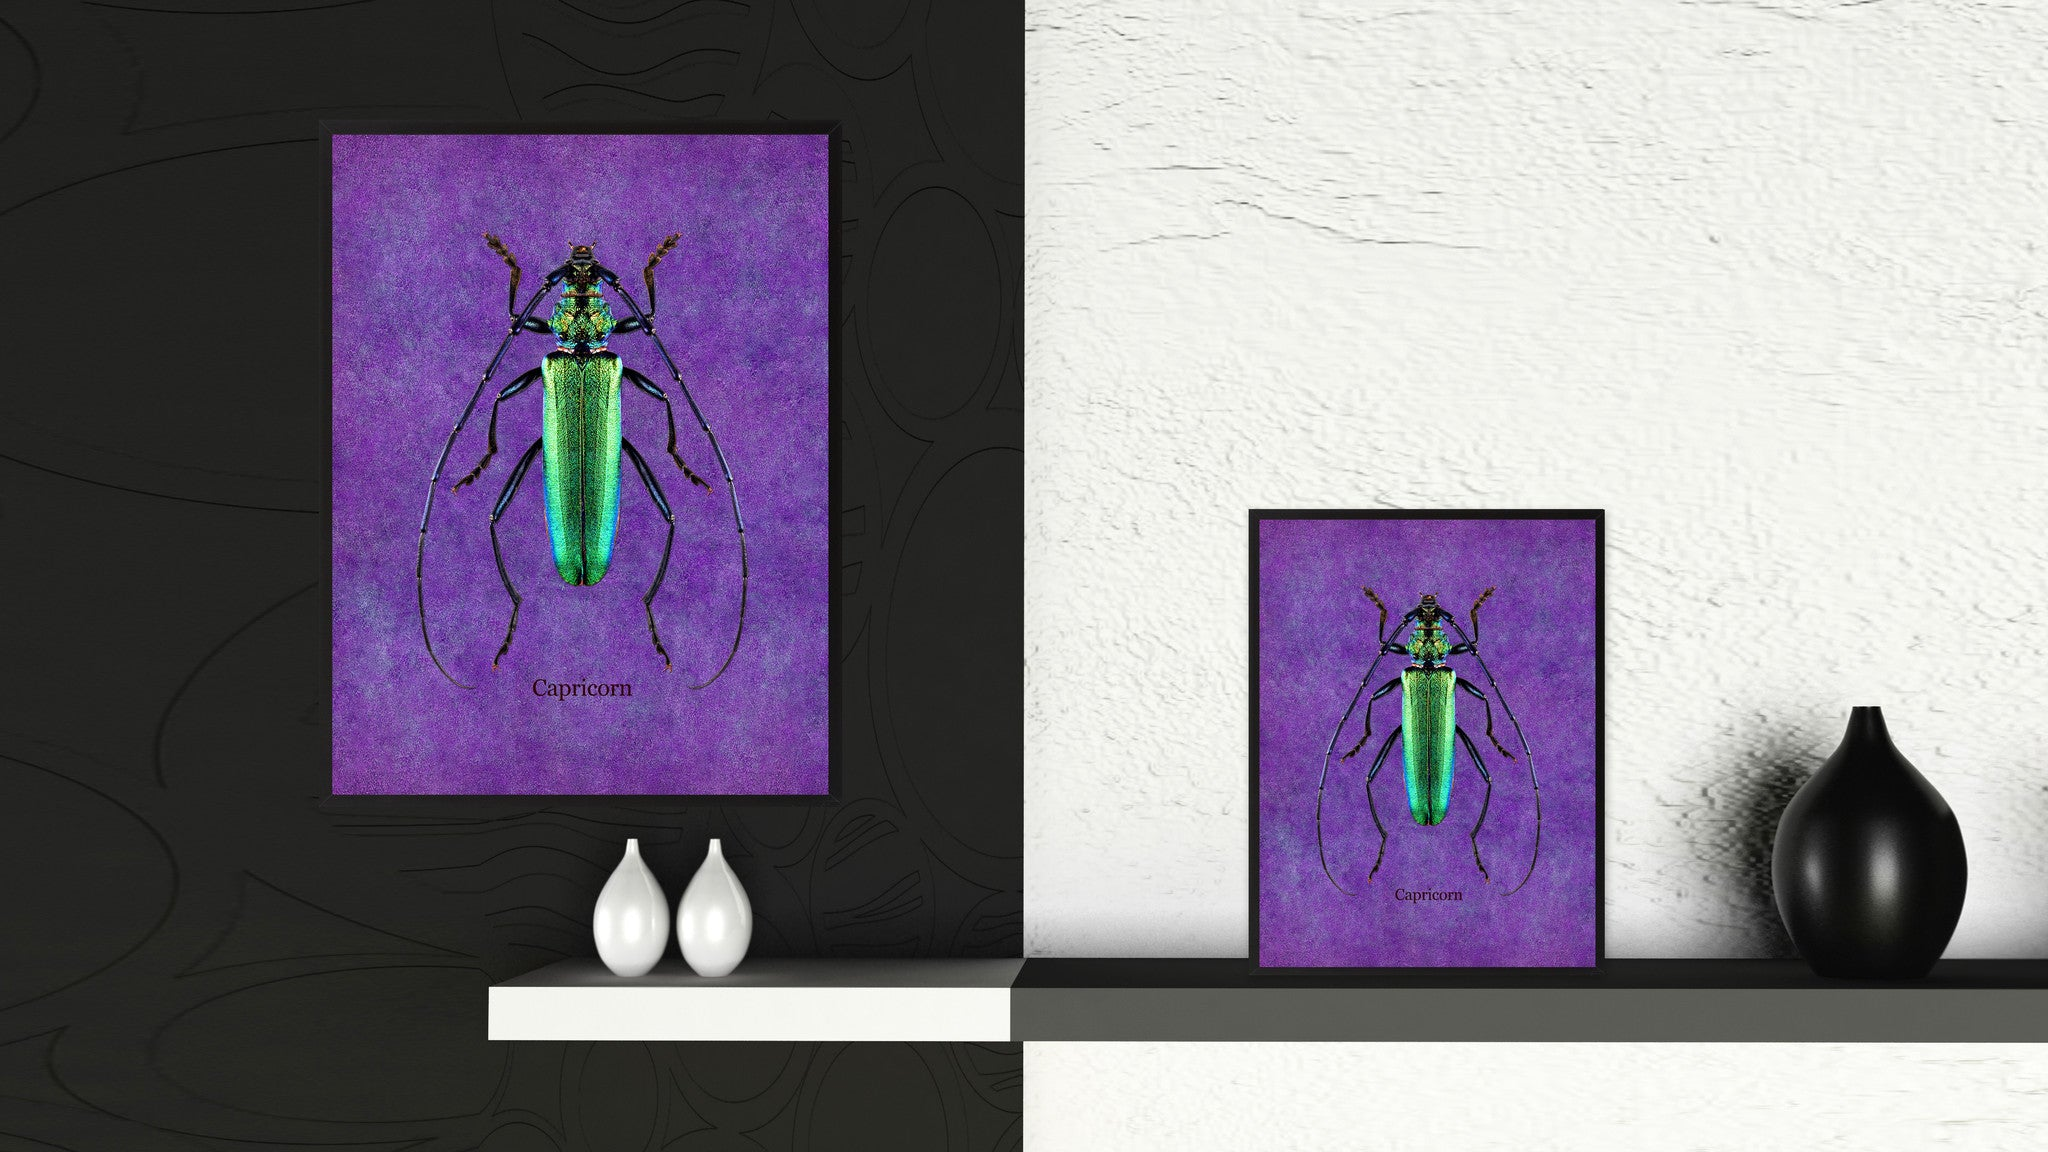 Capricorn Purple Canvas Print, Picture Frames Home Decor Wall Art Gifts